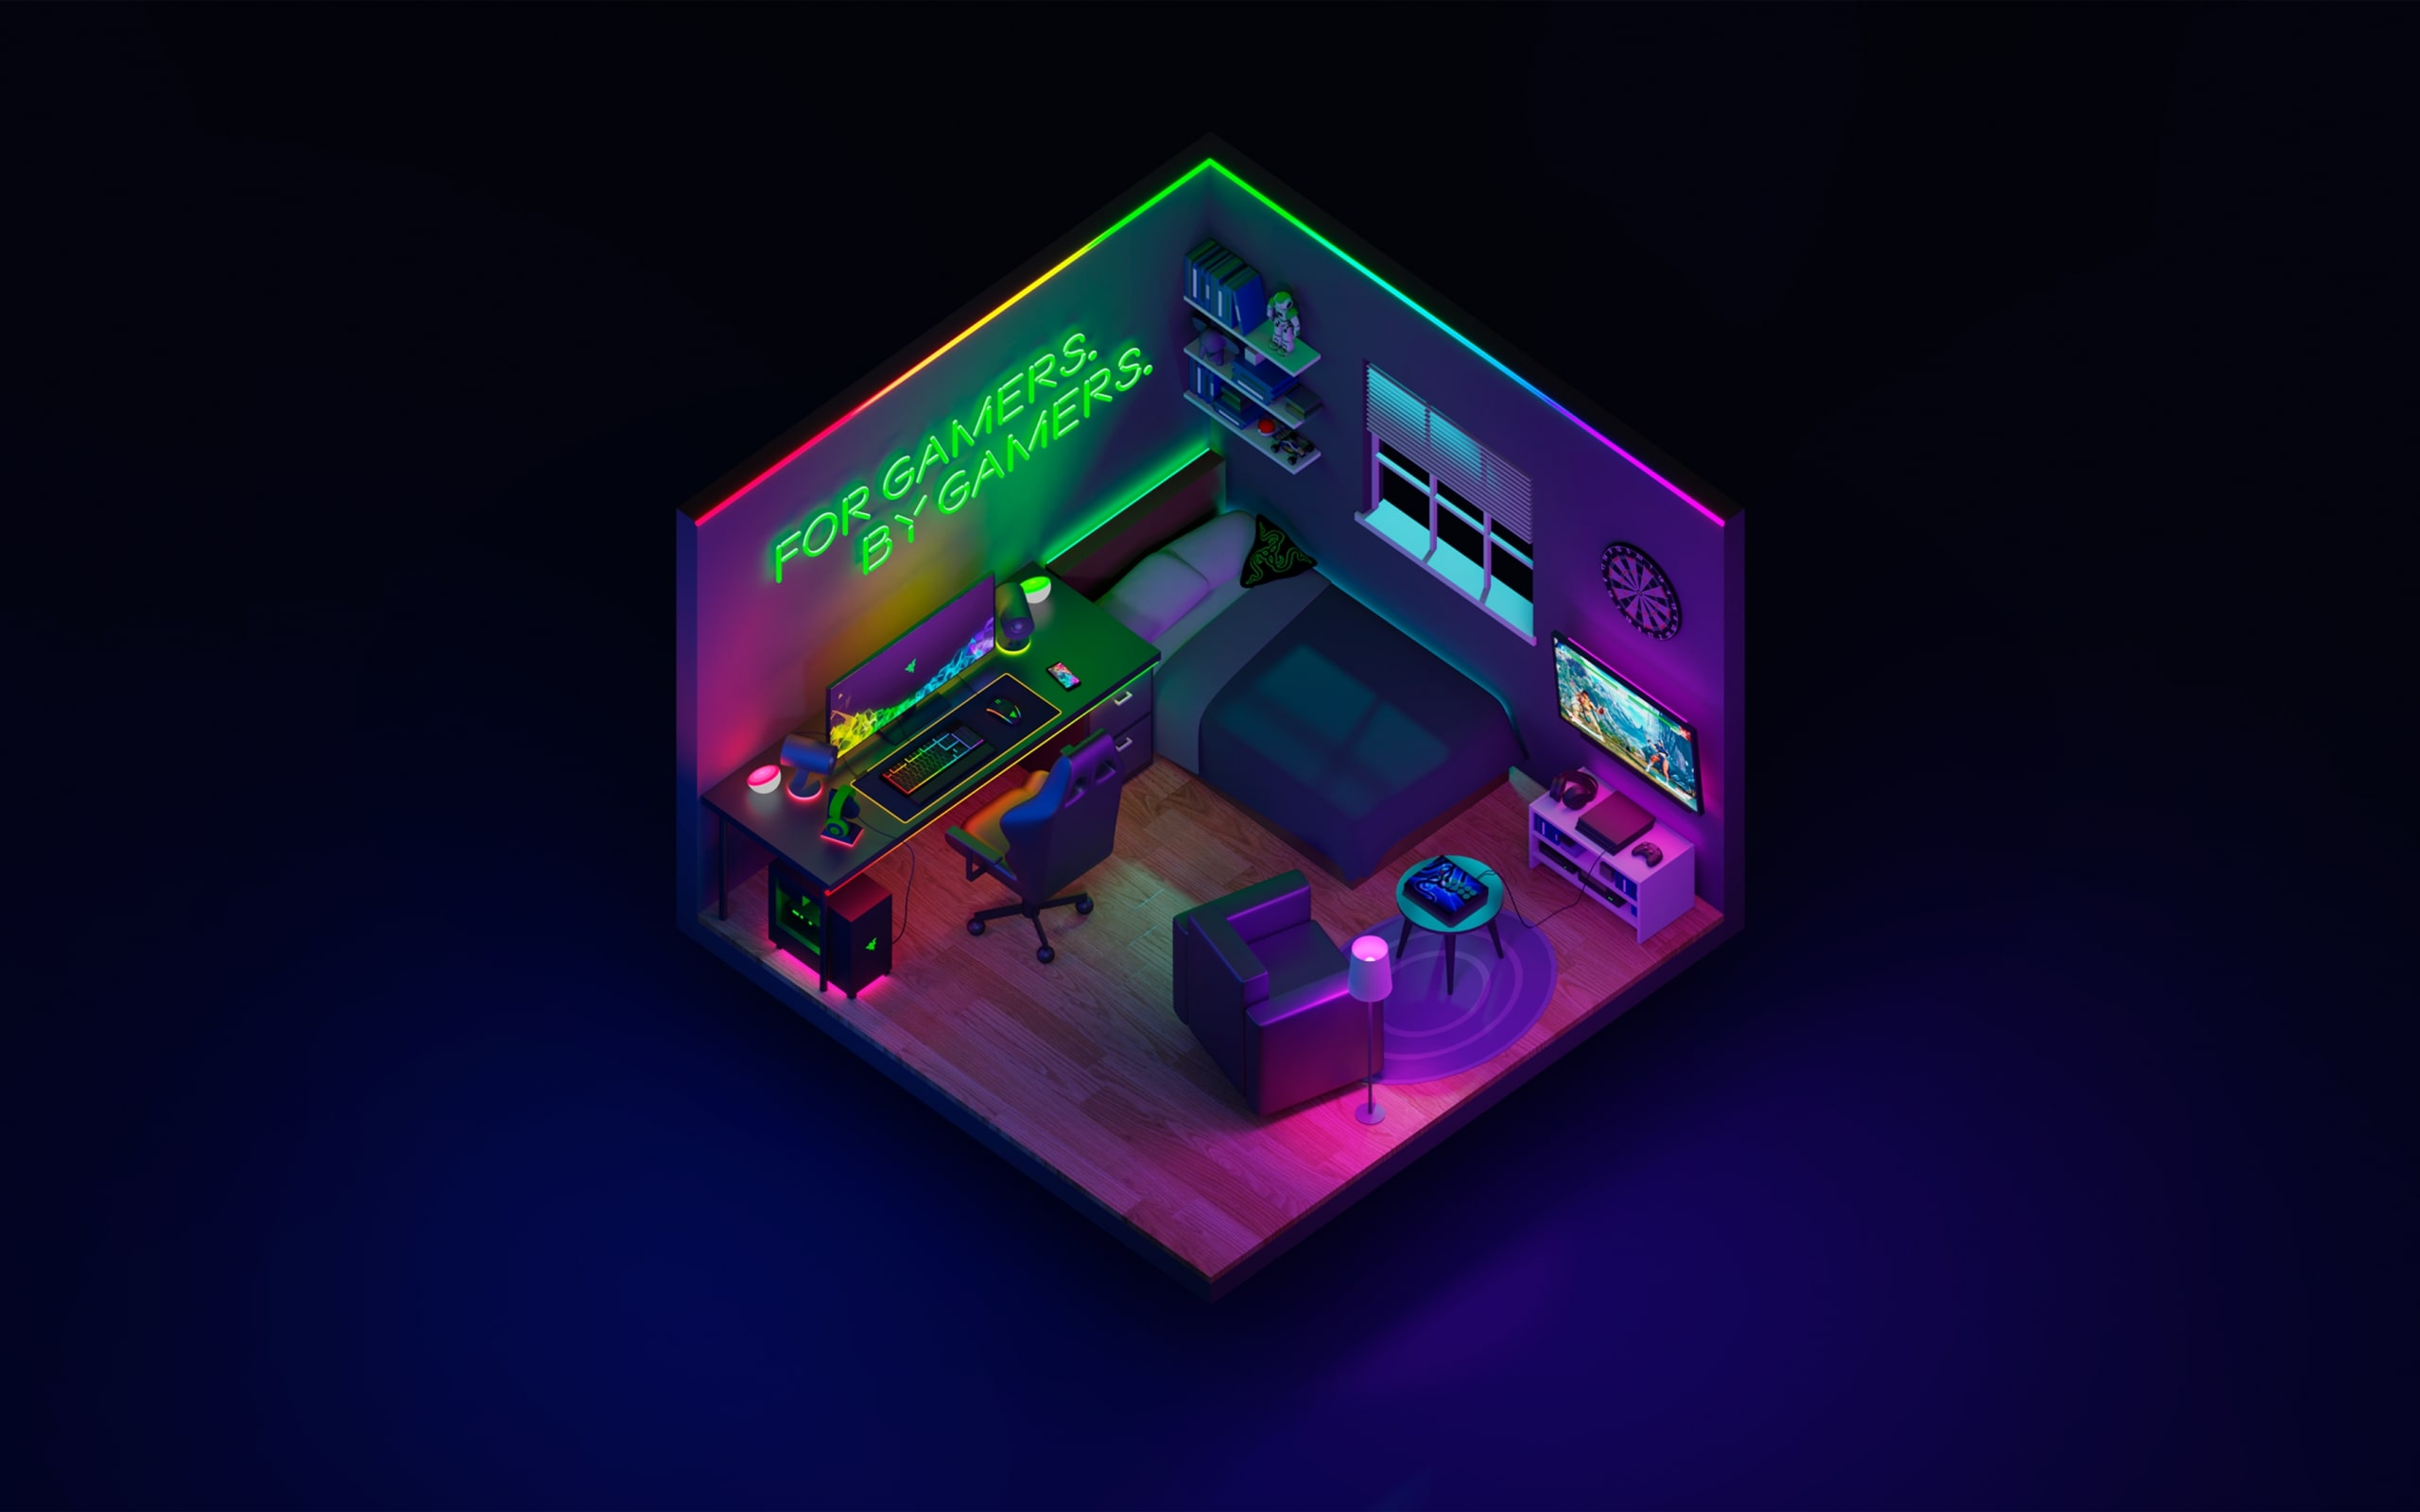 Wallpaper Of Technology Razer Room Background Amp Hd Image